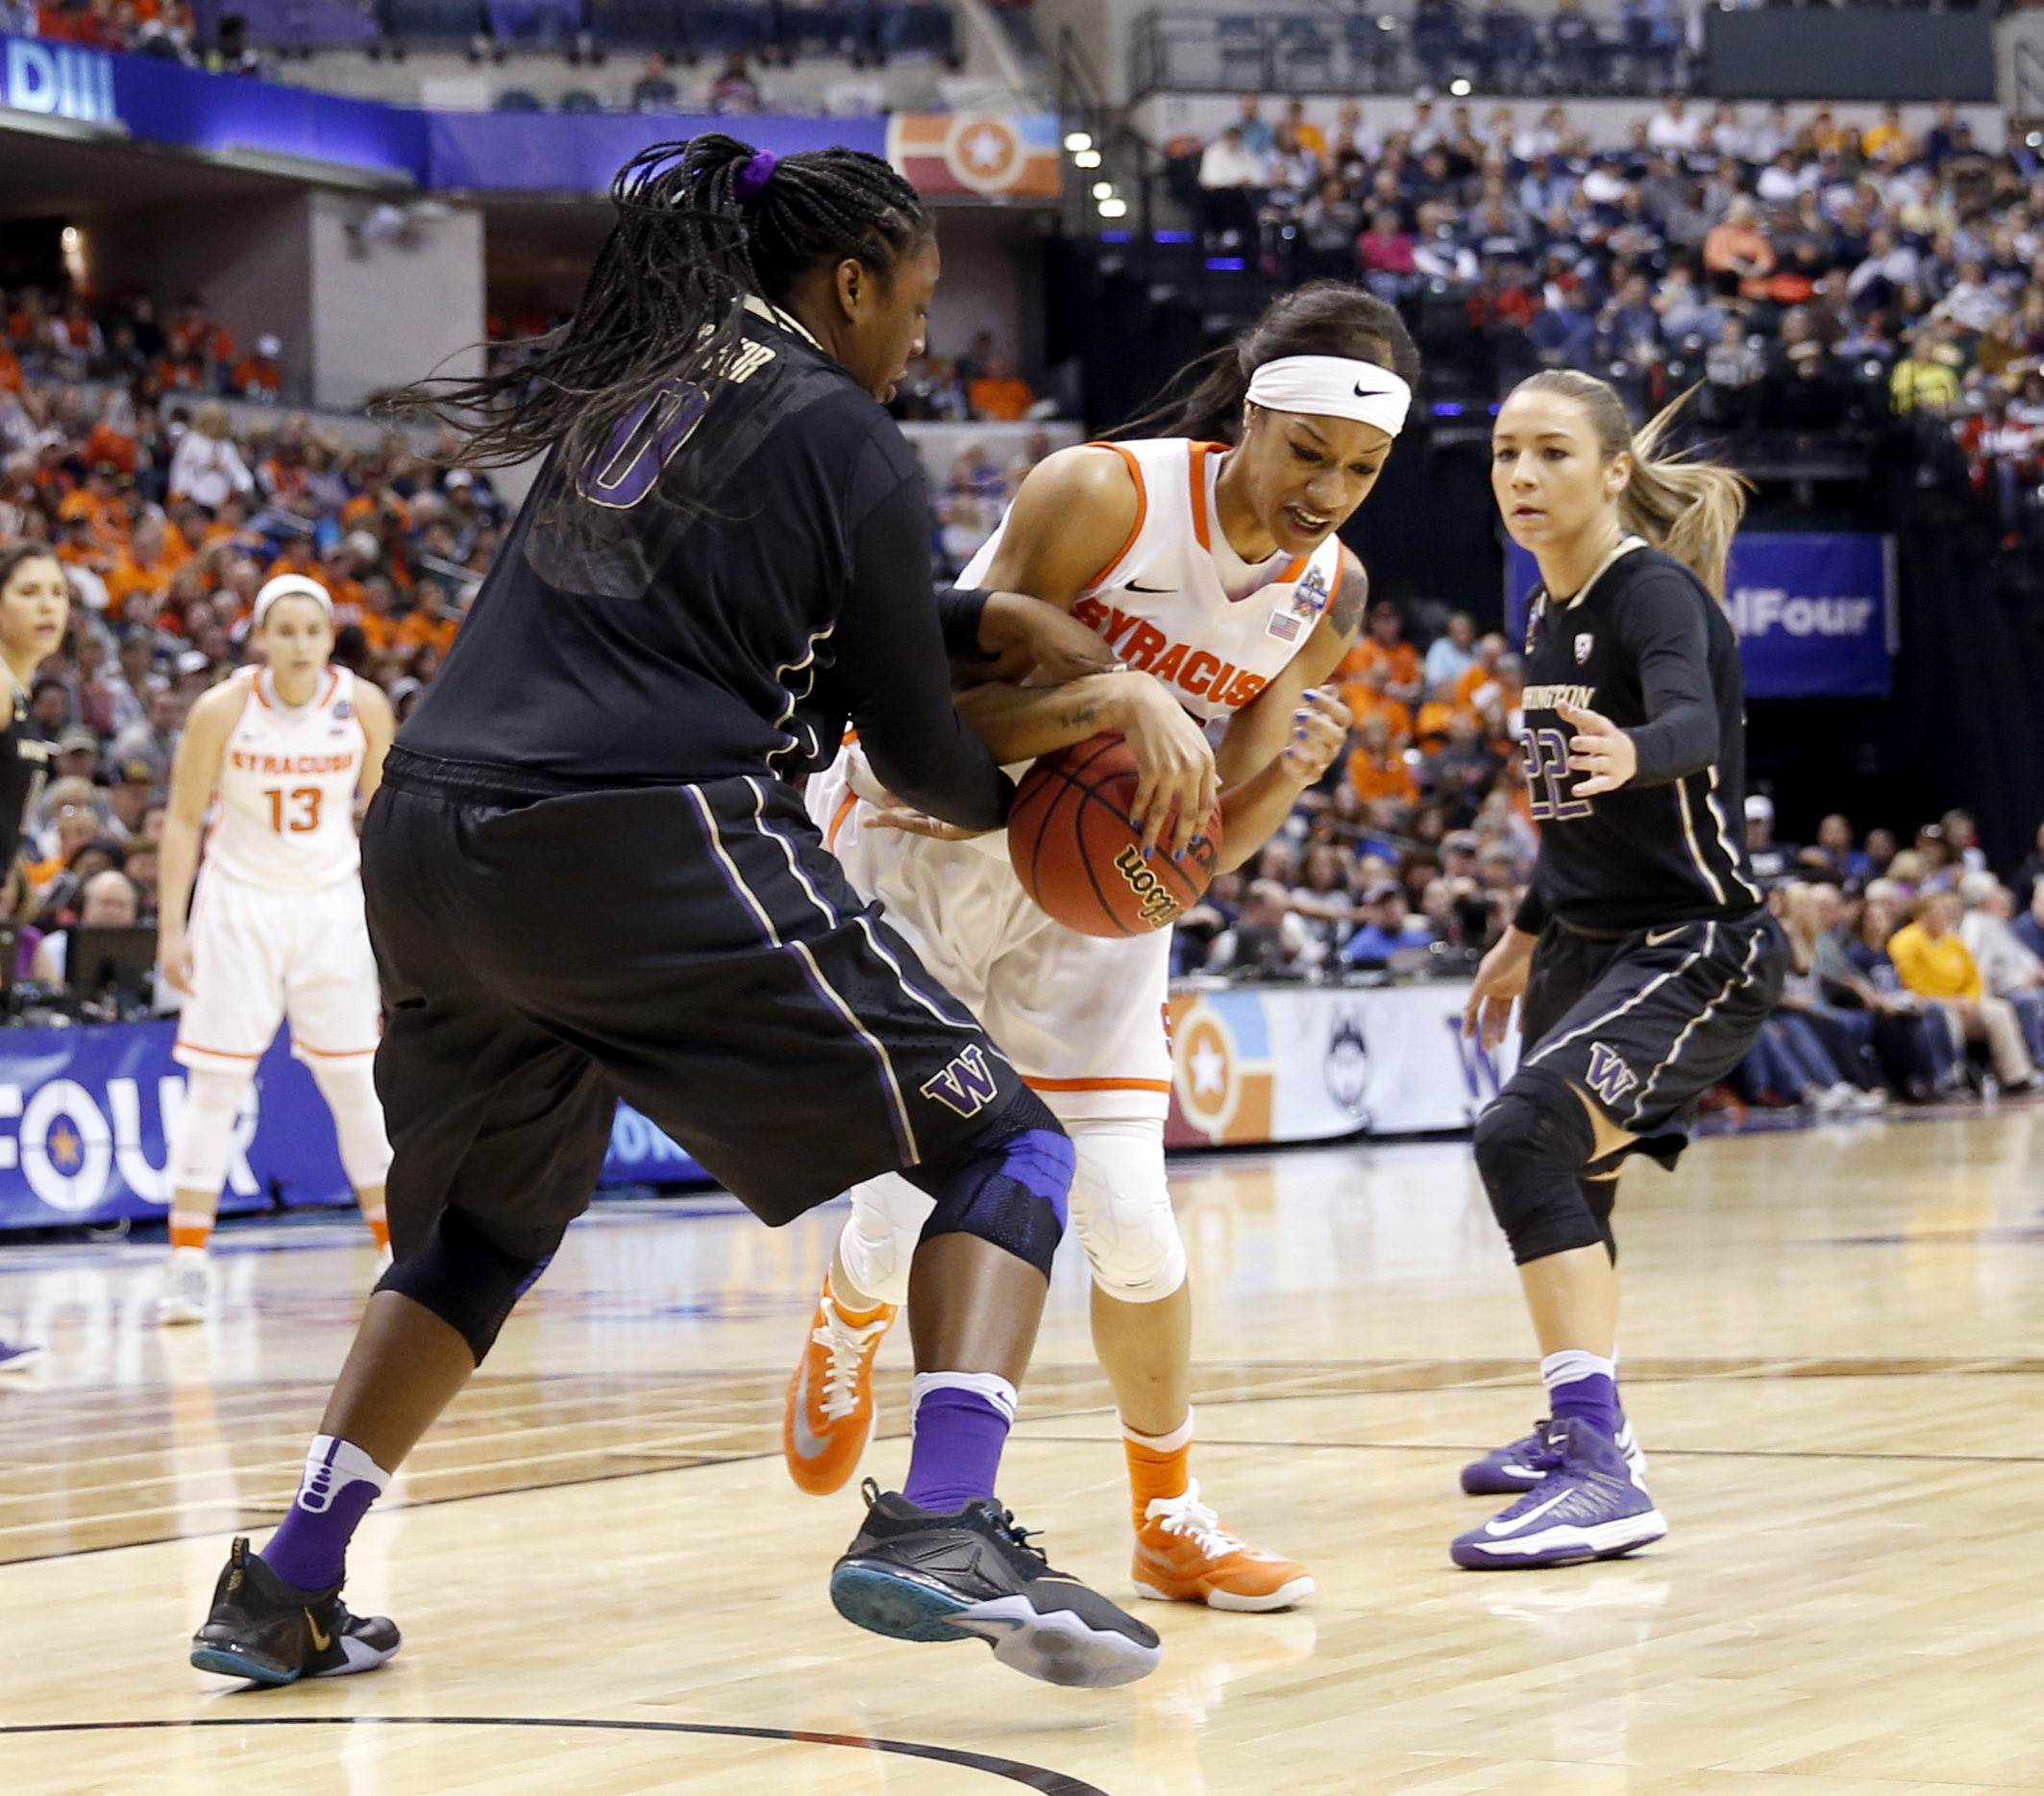 Washington's Chantel Osahor (0) and Syracuse's Briana Day (50) grab a loose ball during the first half of a national semifinal game at the women's Final Four in the NCAA college basketball tournament Sunday, April 3, 2016, in Indianapolis. (AP Photo/AJ Ma